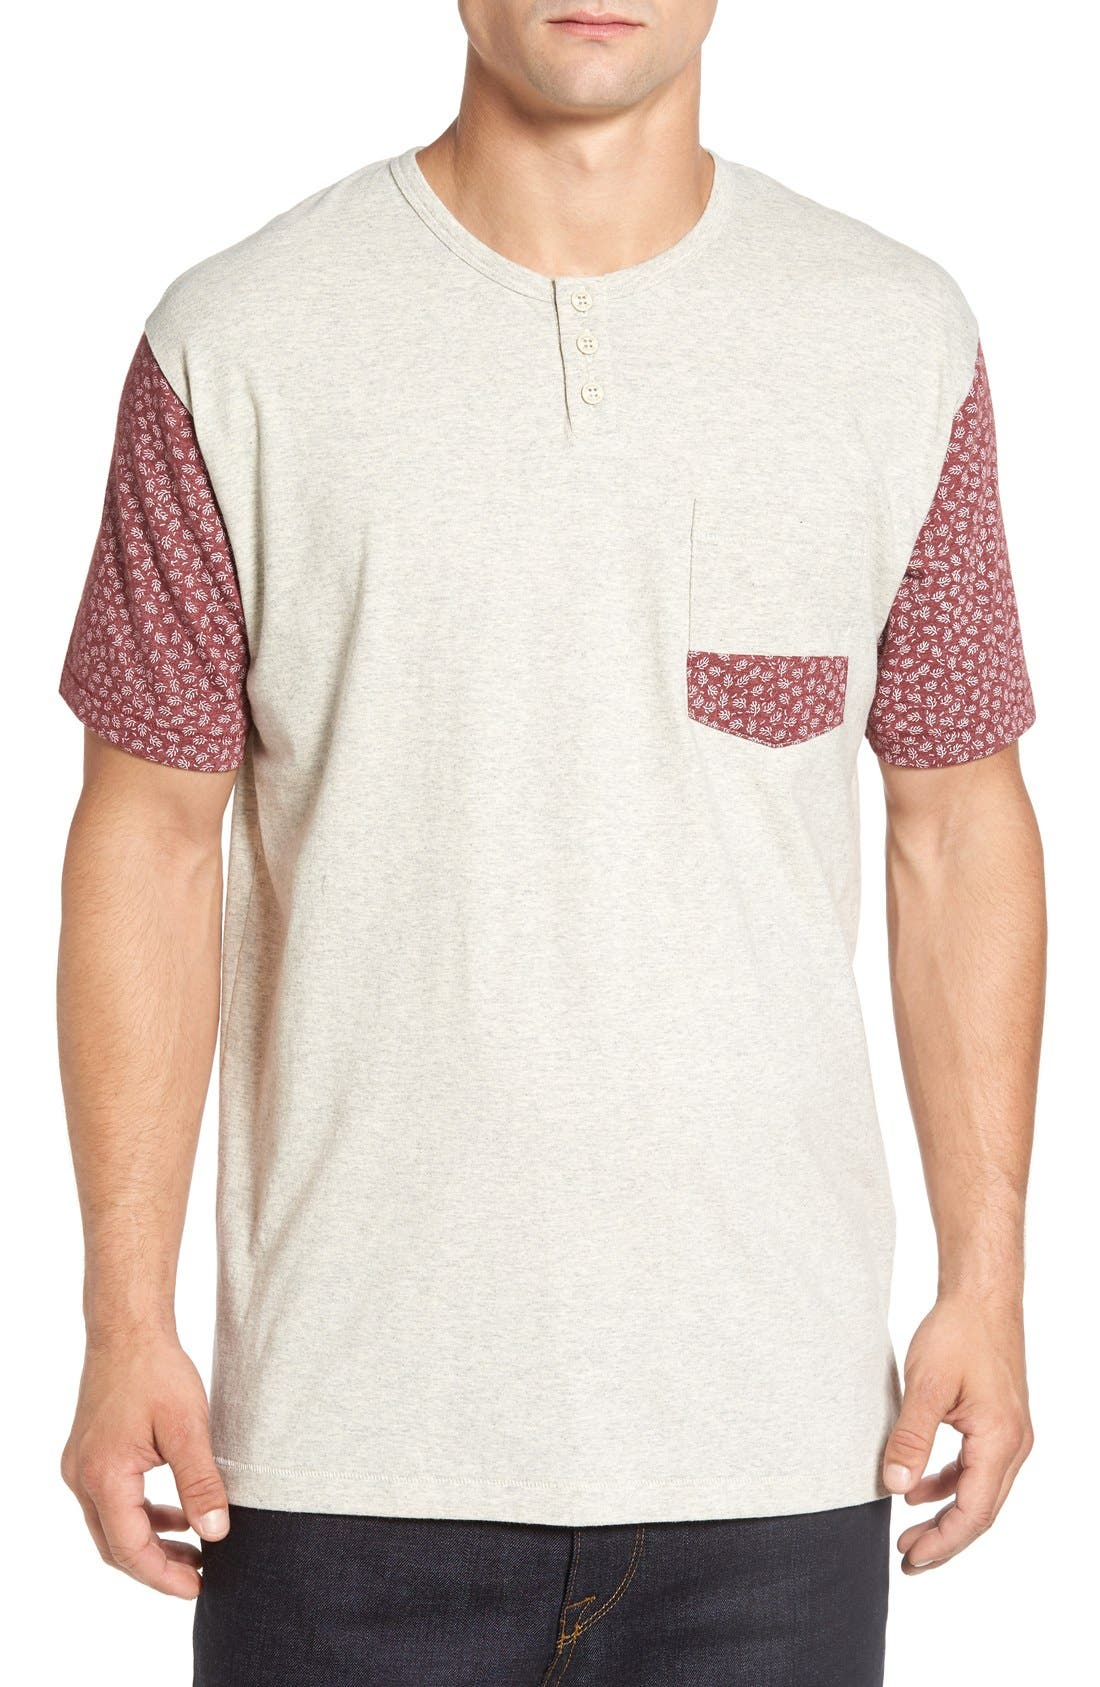 Alternate Image 1 Selected - Imperial Motion 'Harper' Short Sleeve Pocket Henley T-Shirt